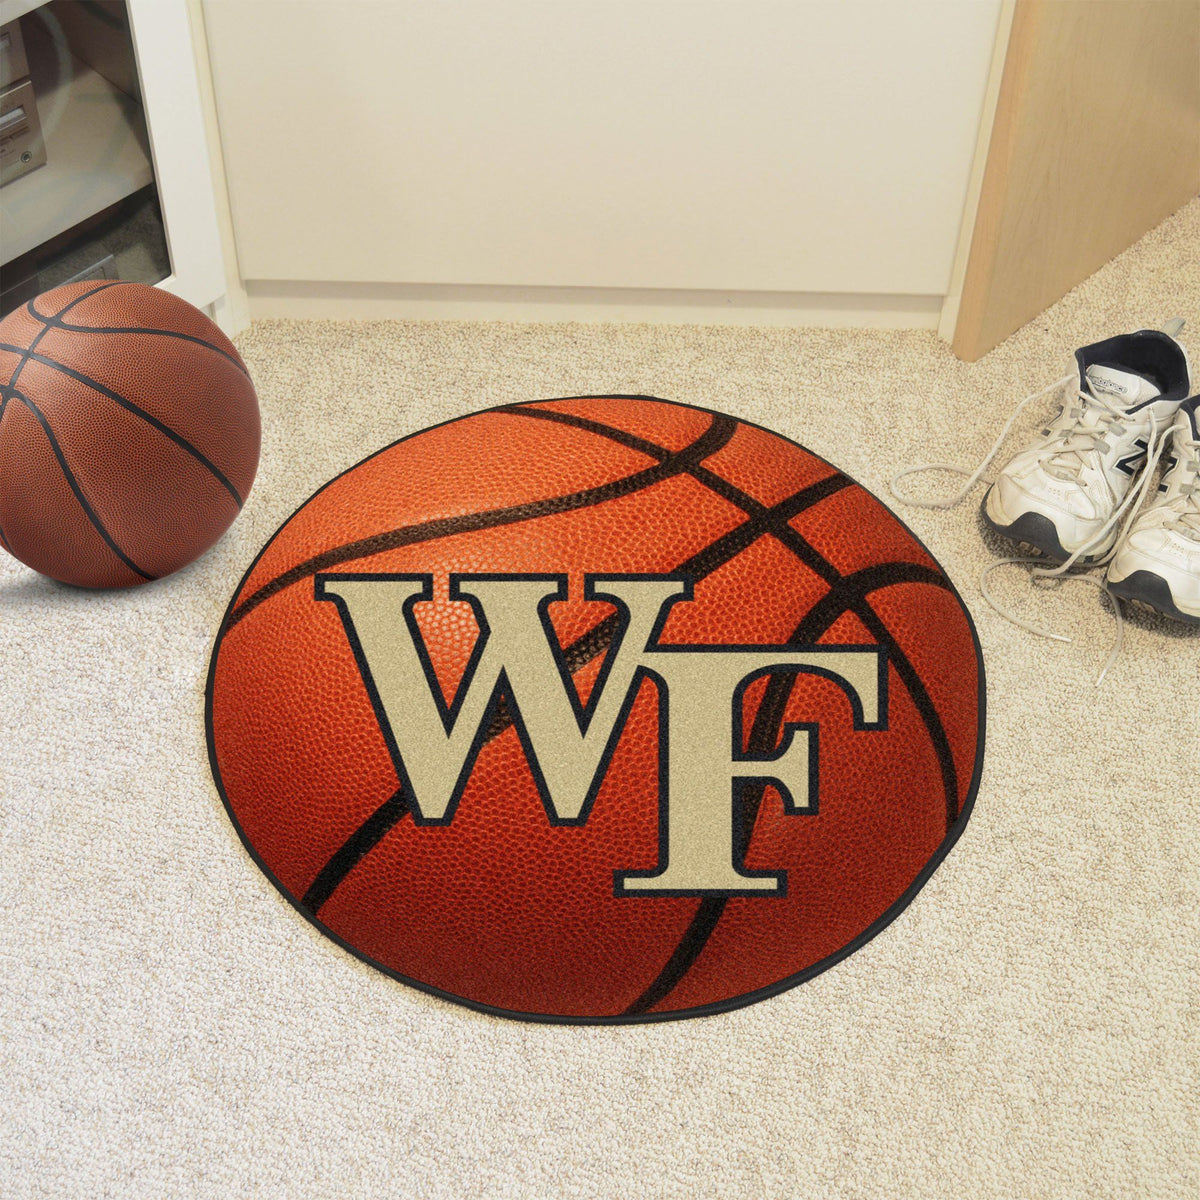 Collegiate - Basketball Mat: T - Z Collegiate Mats, Rectangular Mats, Basketball Mat, Collegiate, Home Fan Mats Wake Forest